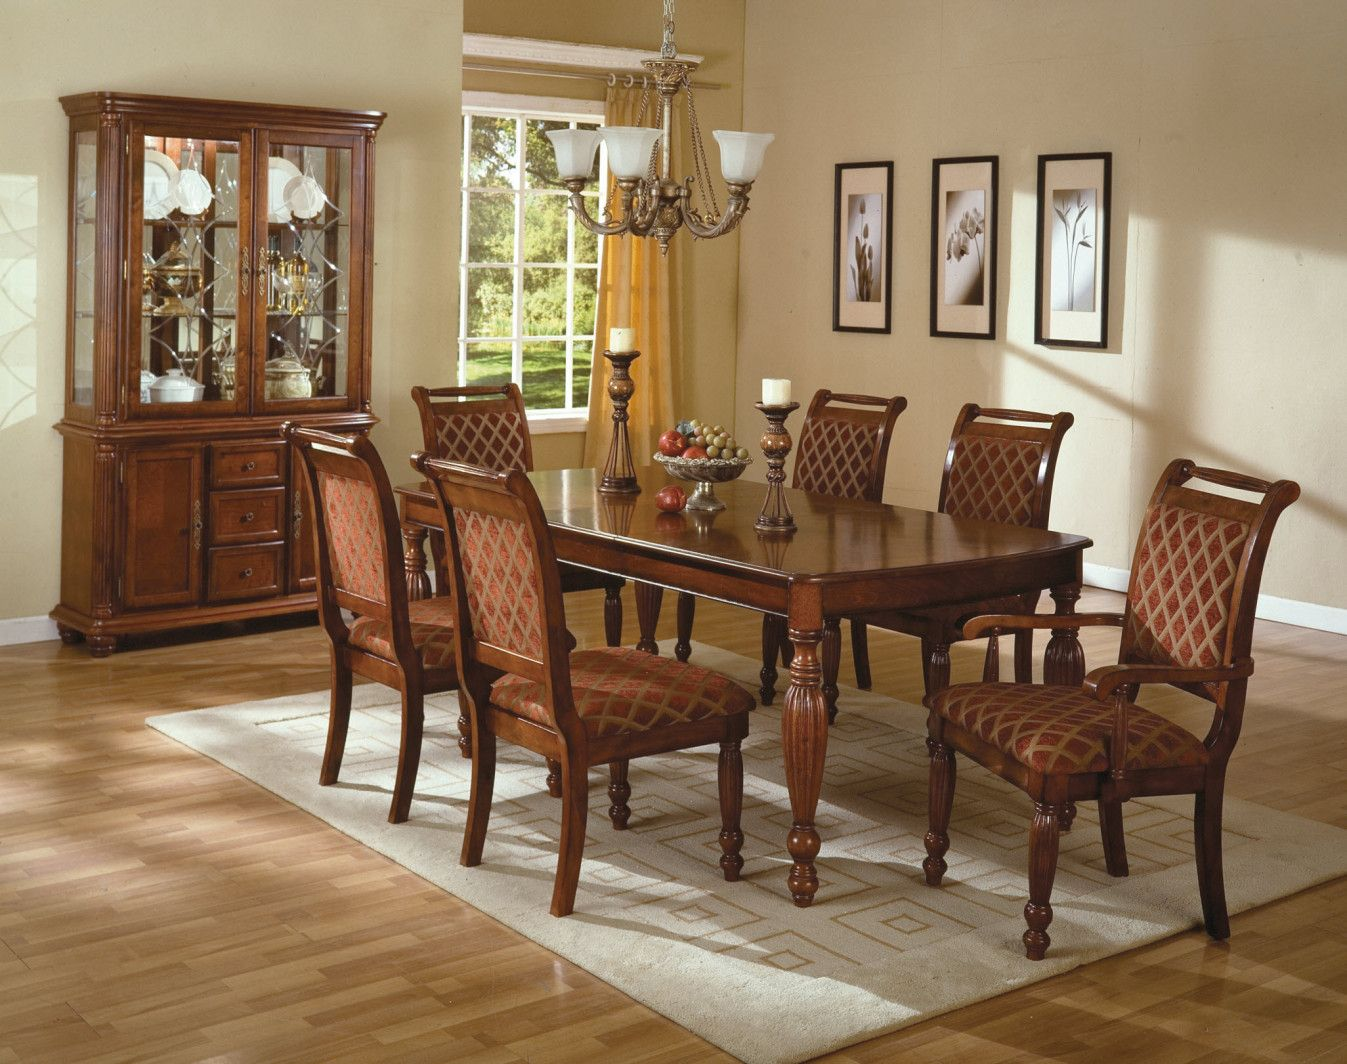 20 Dining Room Chairs Clearance  Modern European Furniture Check Adorable Clearance Dining Room Sets 2018